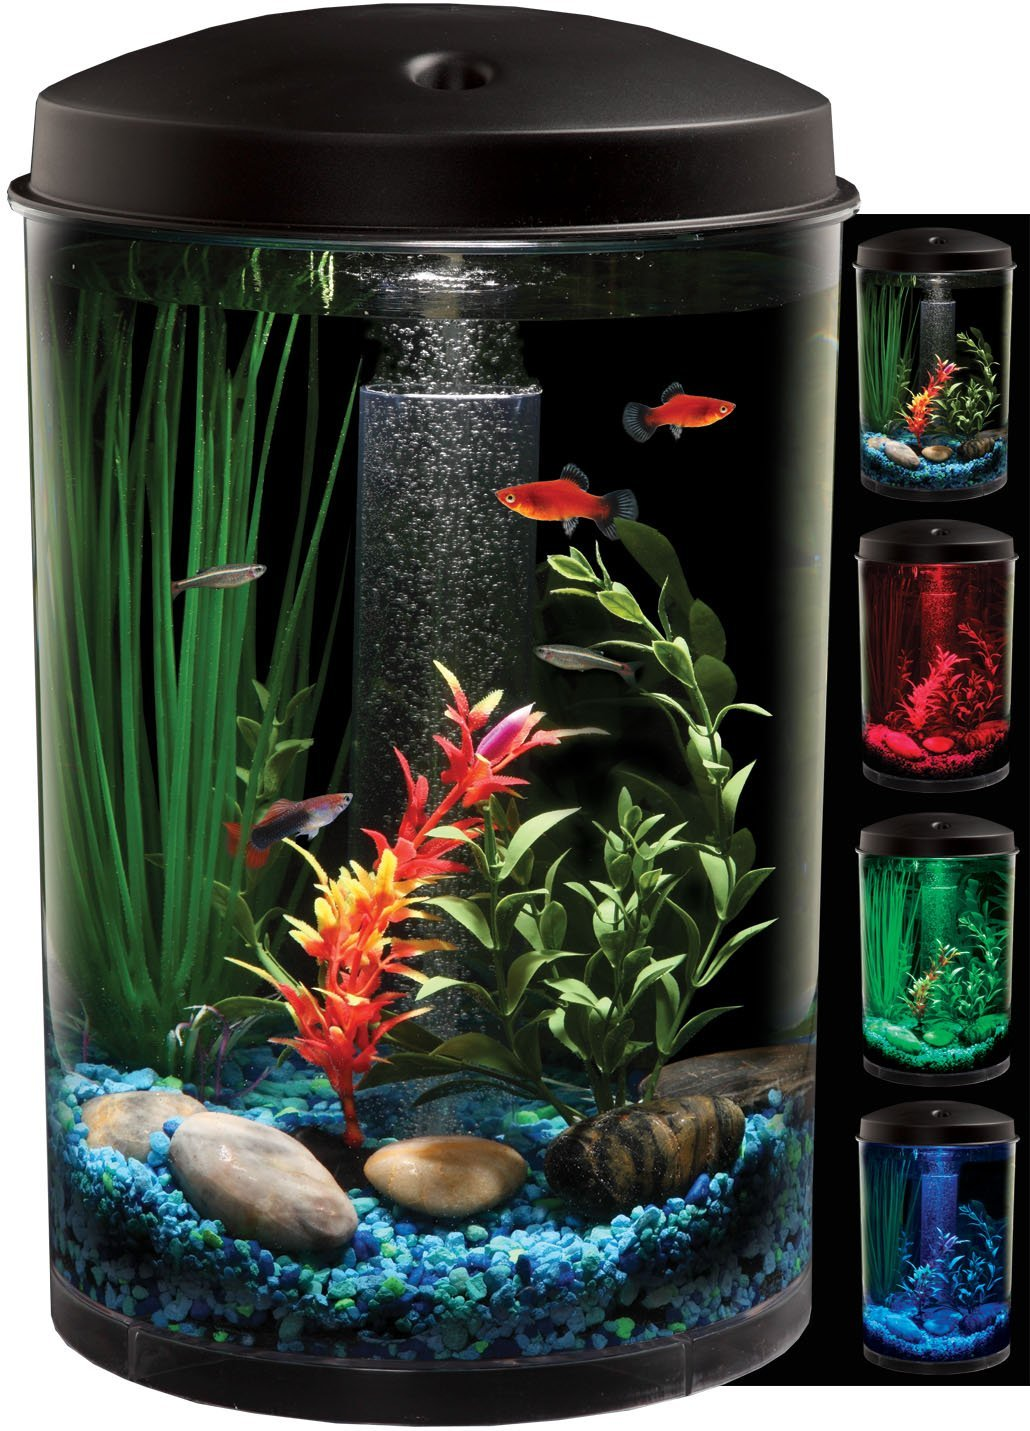 15 creative aquariums and modern fish tanks designs part 5. Black Bedroom Furniture Sets. Home Design Ideas